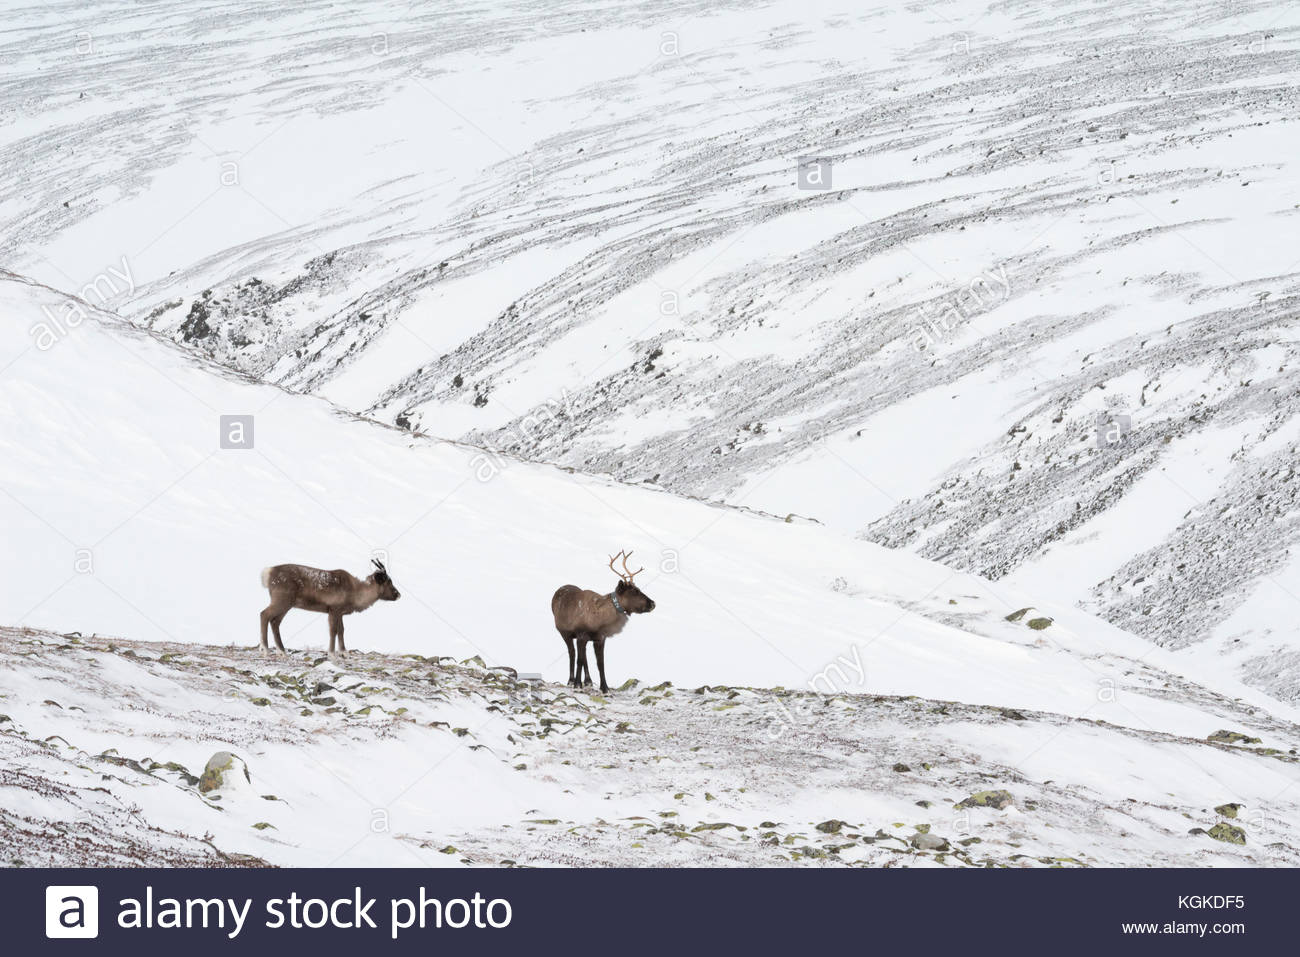 Two Semi-domesticated Reindeer, Rangifer tarandus, roaming in snow-covered landscape. - Stock Image